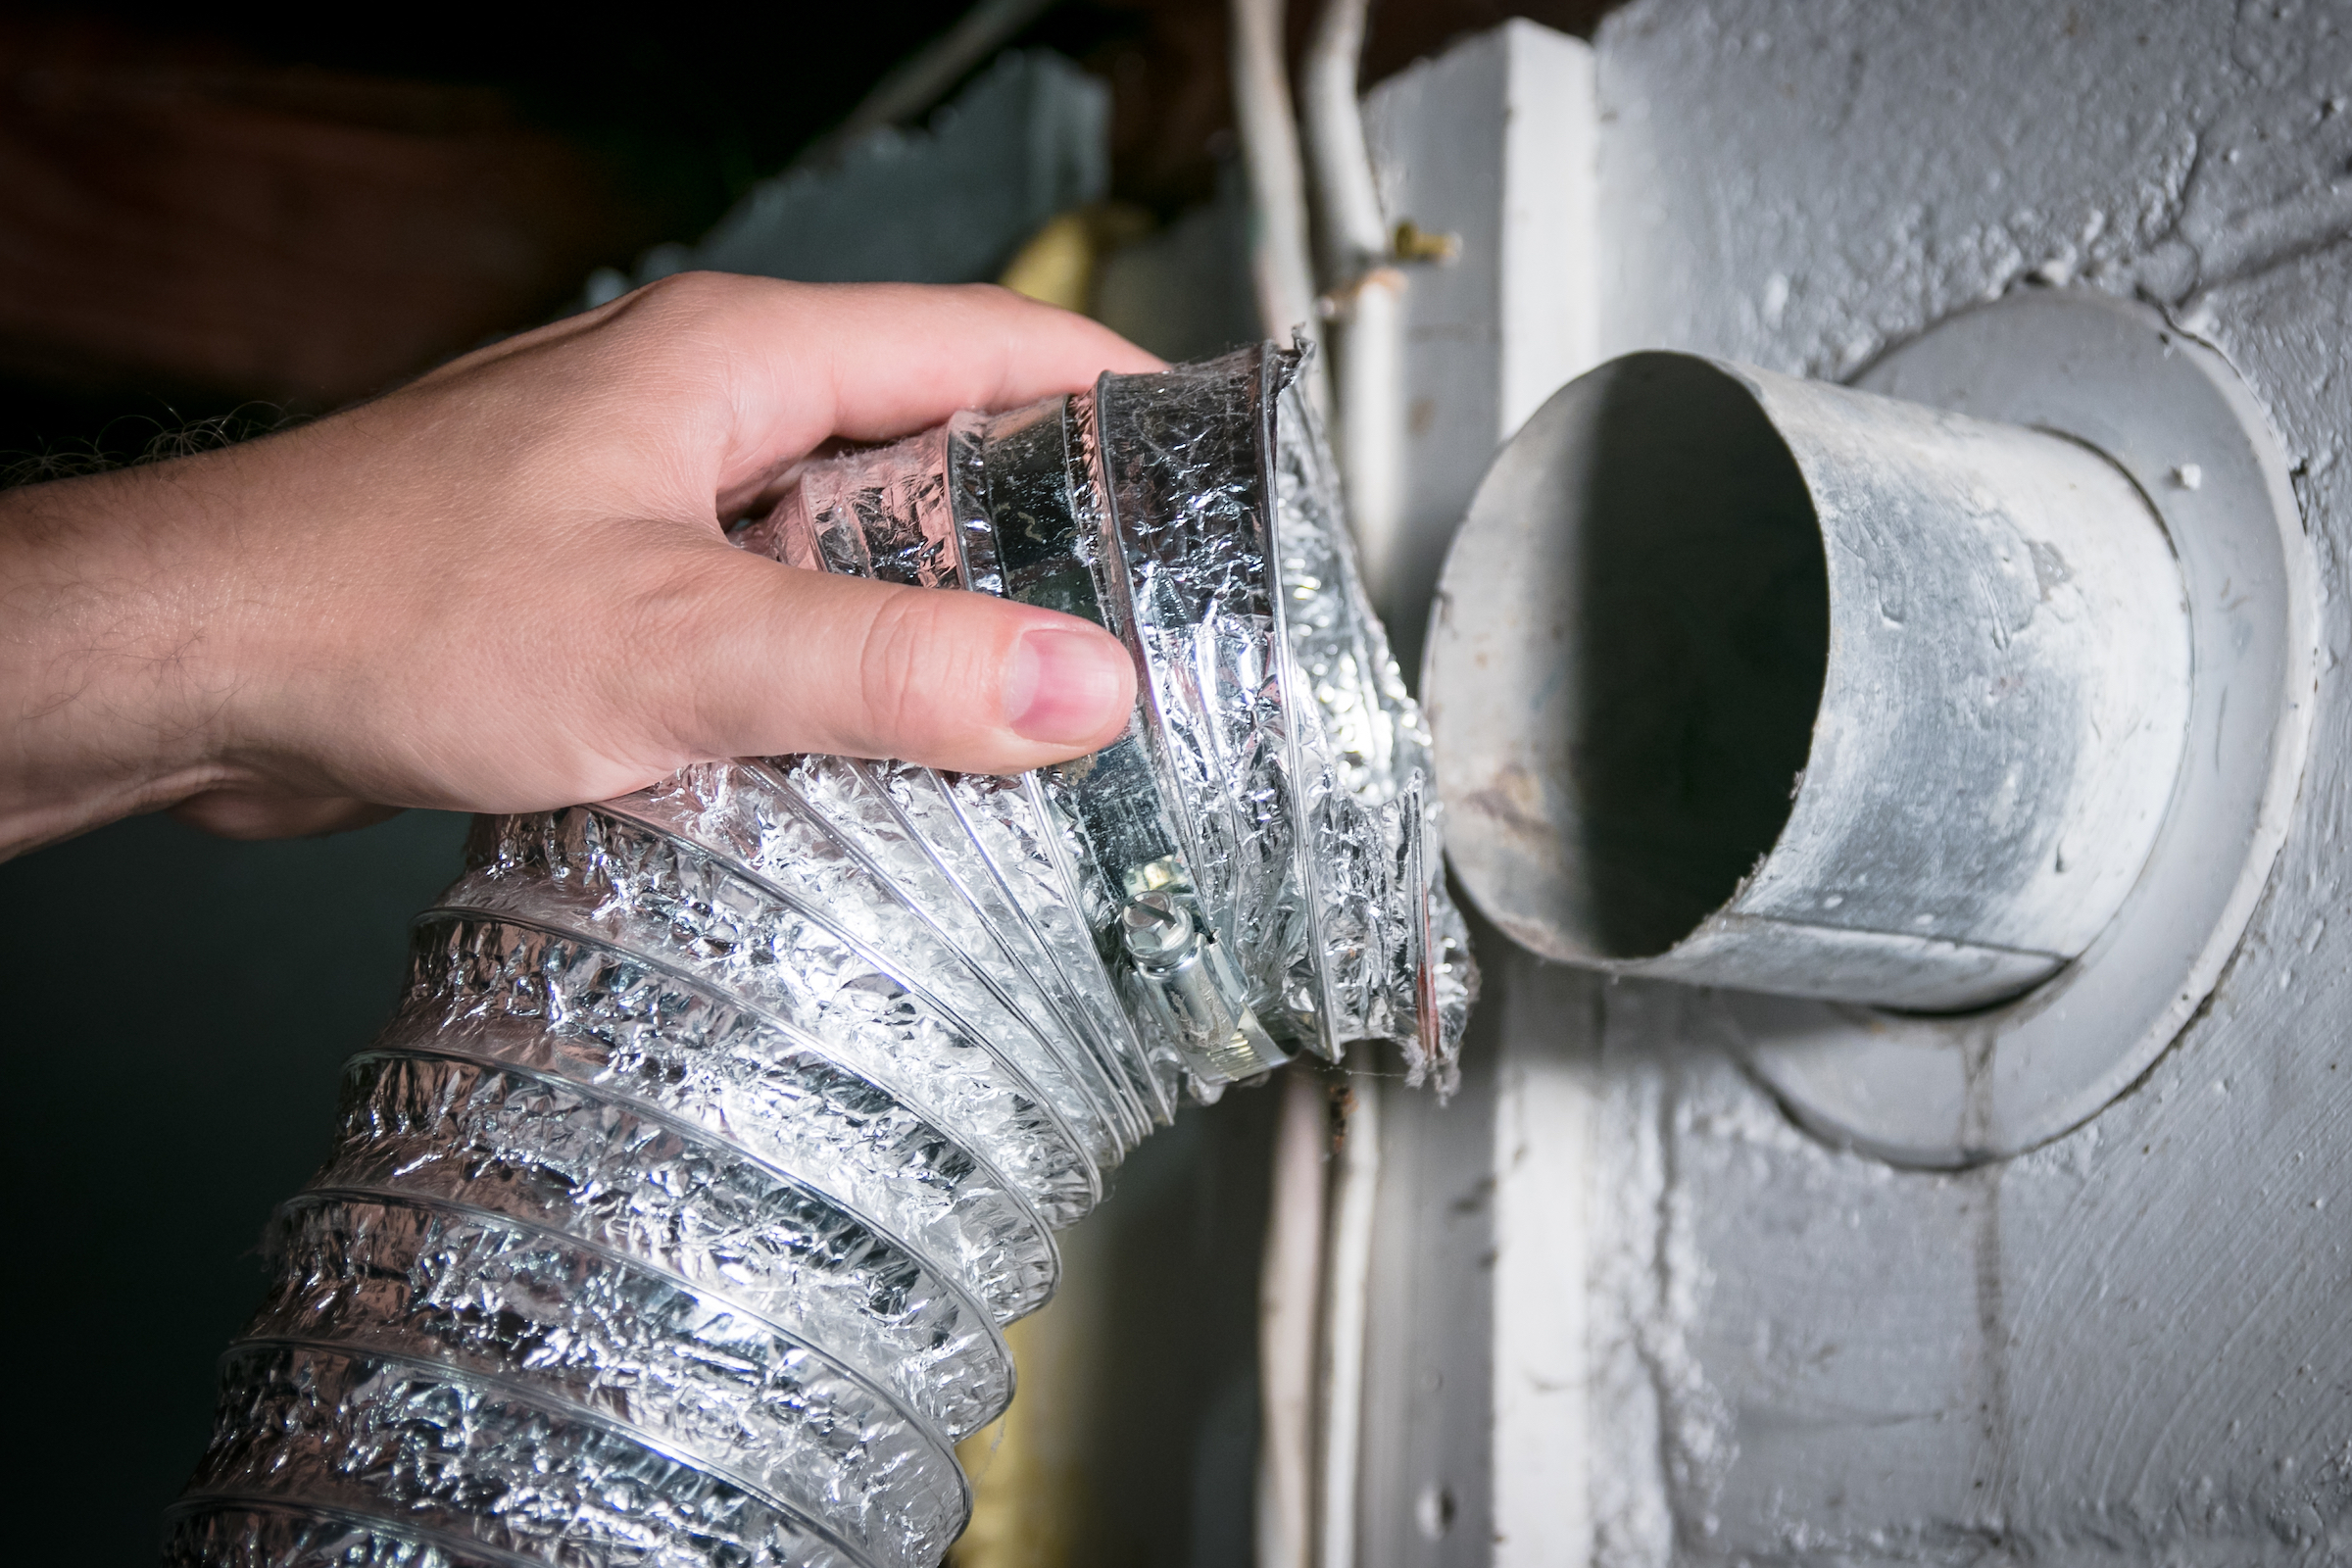 How to clean a clogged dryer vent step by step